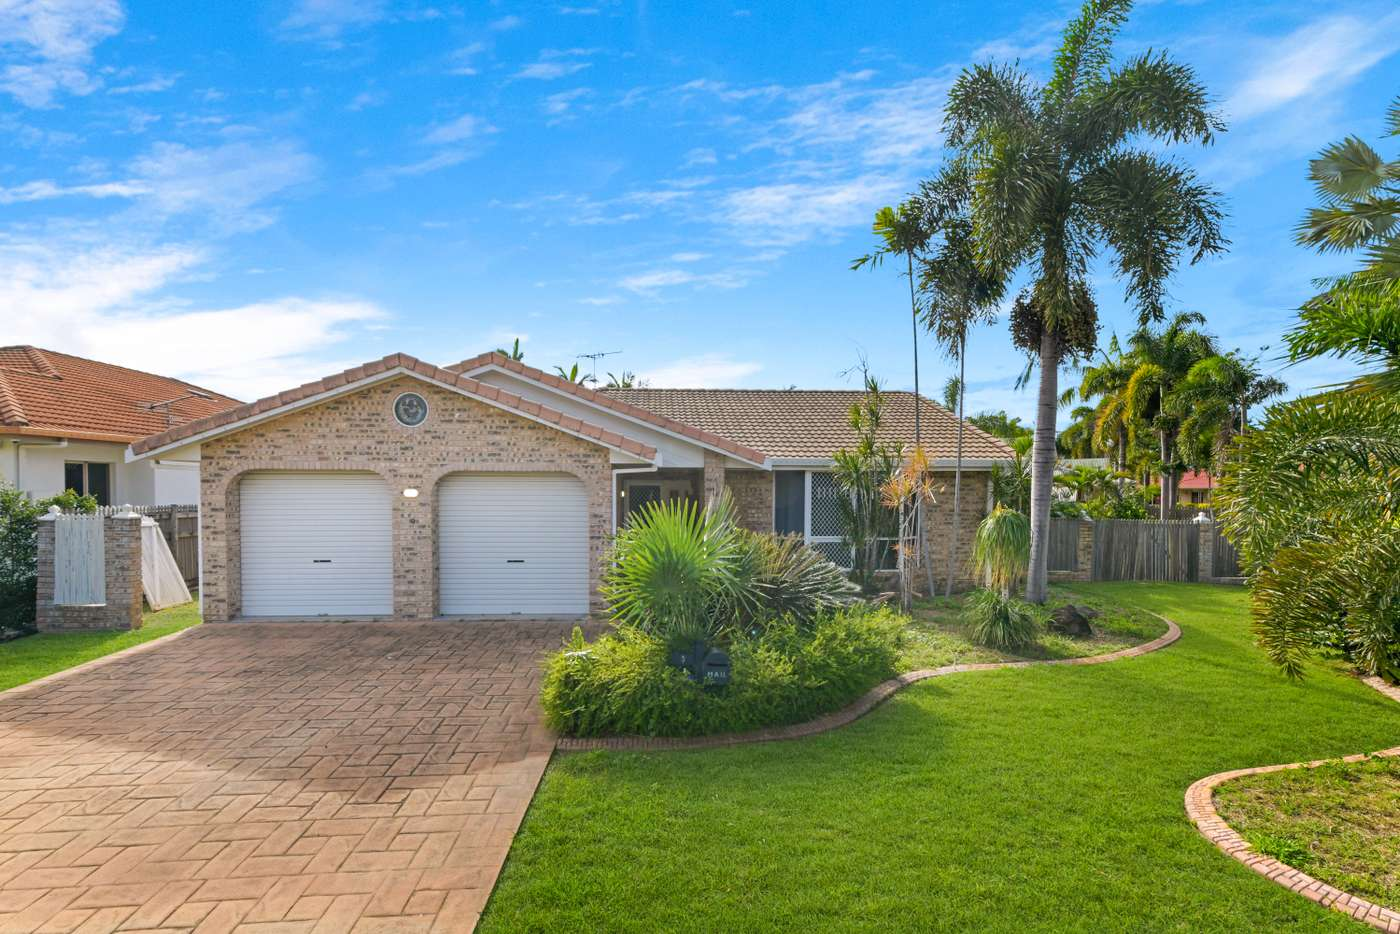 Main view of Homely house listing, 3 Nowranie Court, Annandale QLD 4814